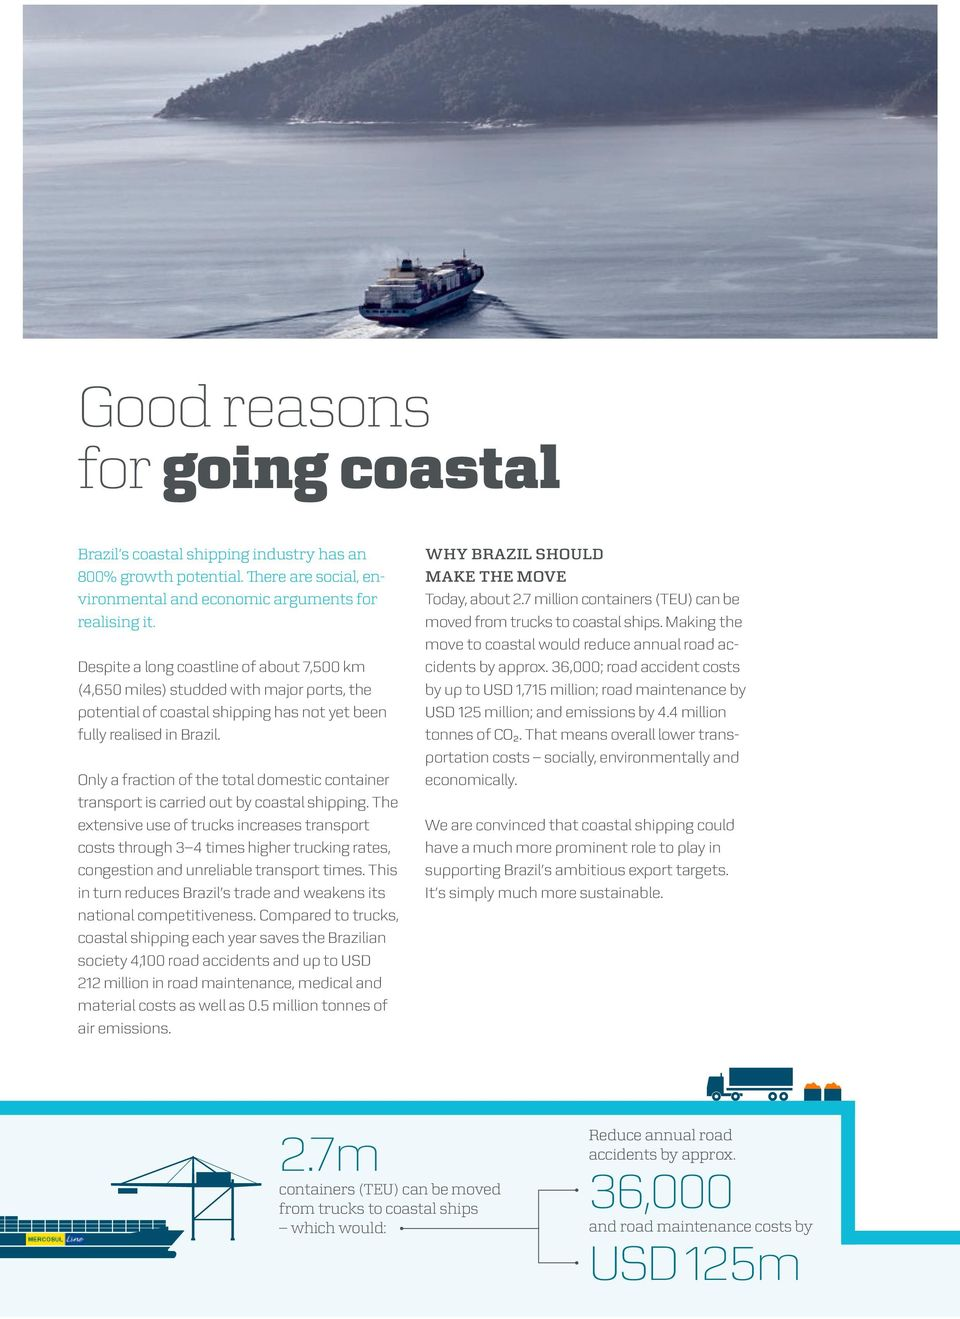 Only a fraction of the total domestic container transport is carried out by coastal shipping.